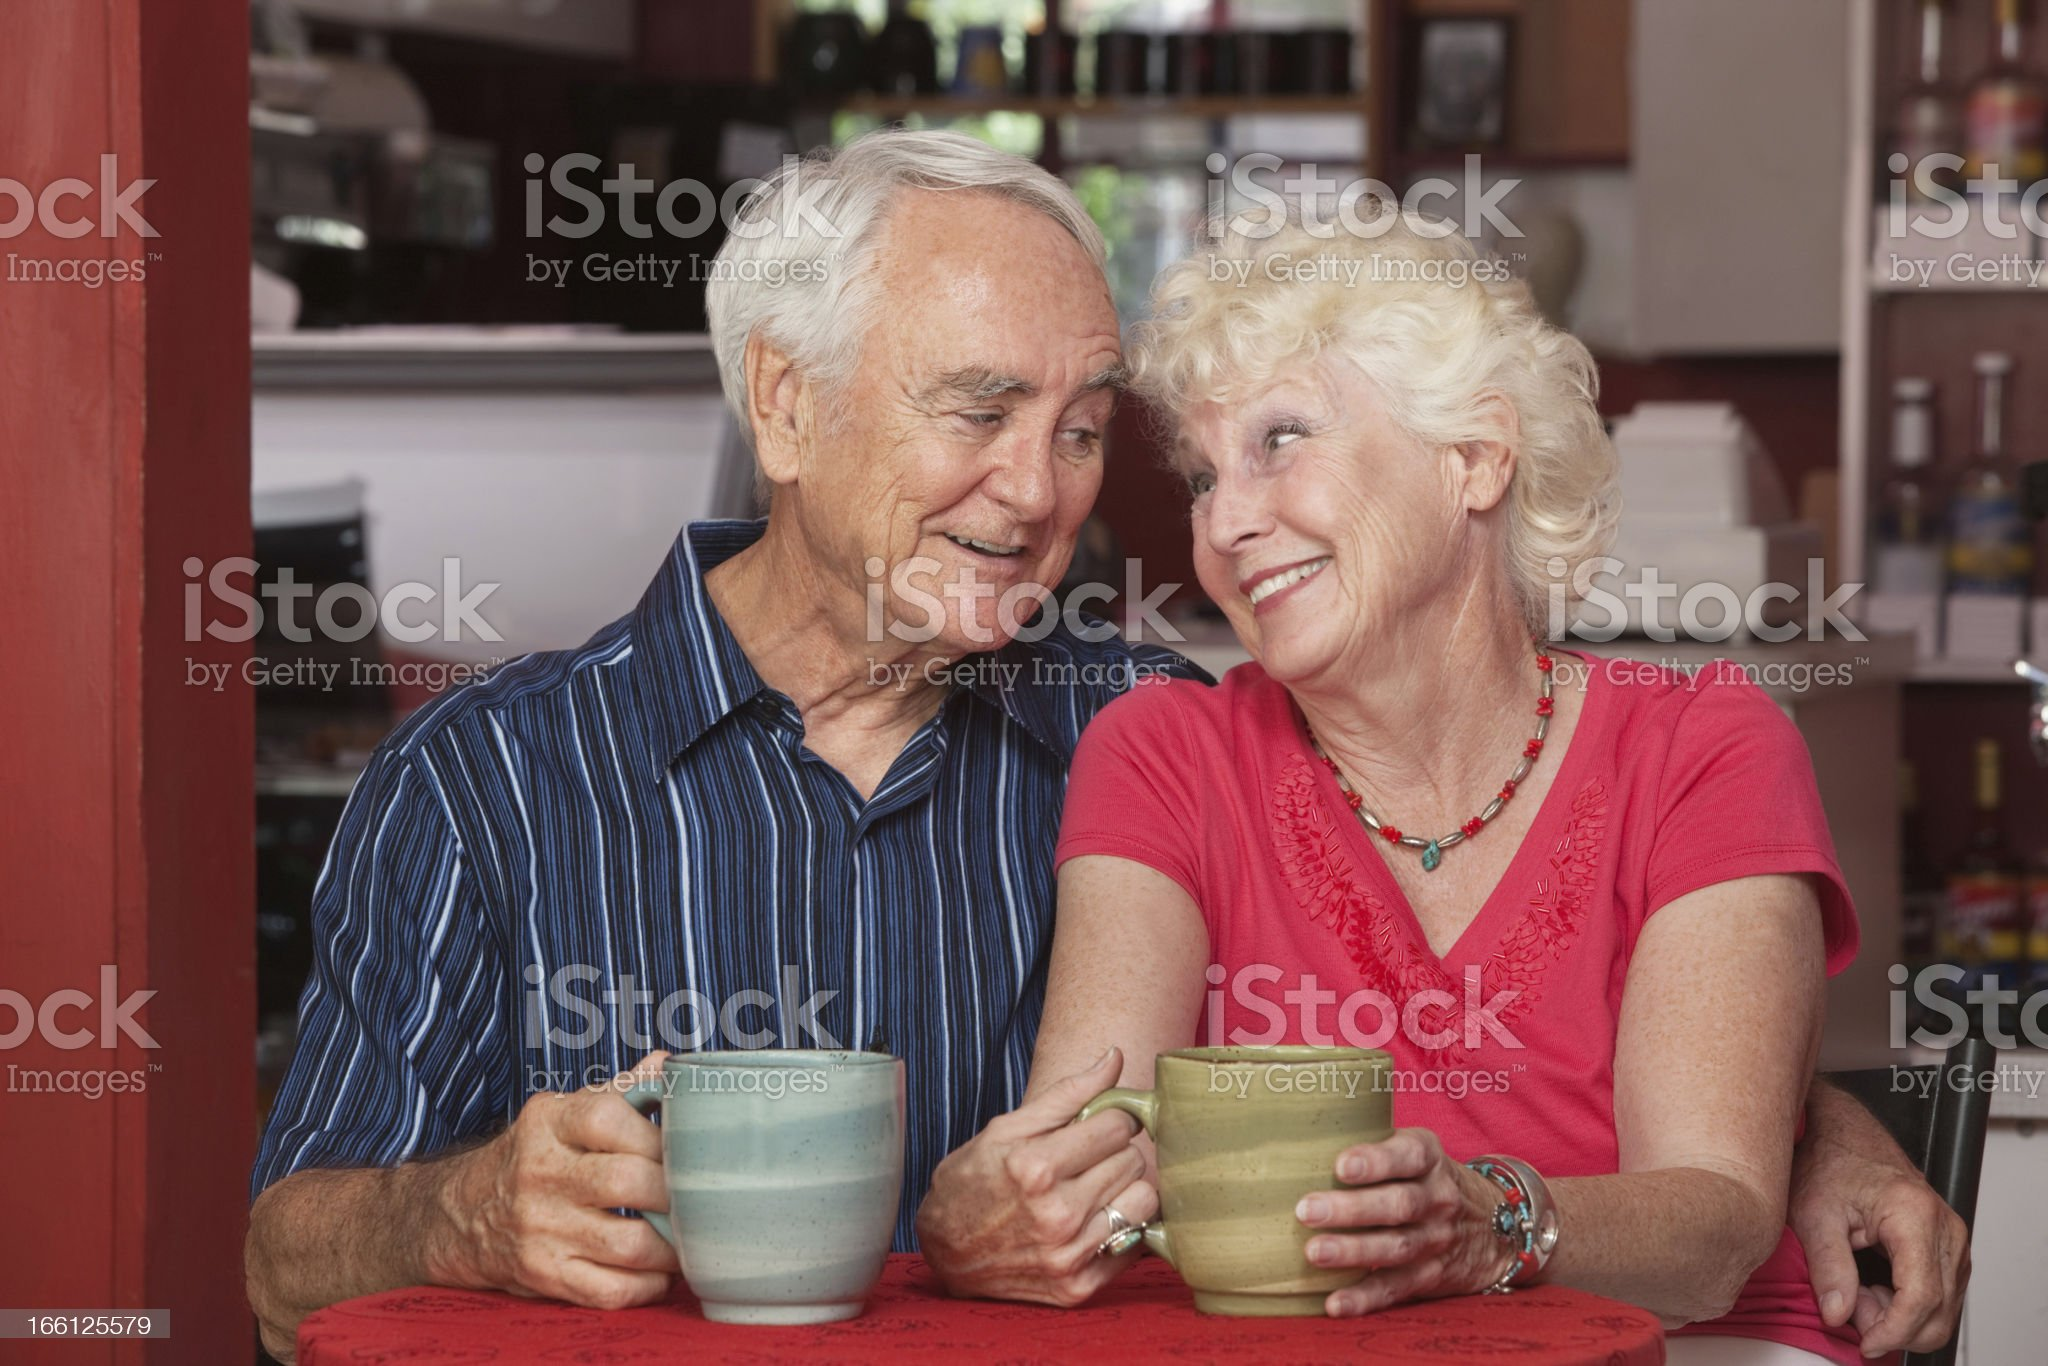 Cute Senior Couple in Love royalty-free stock photo